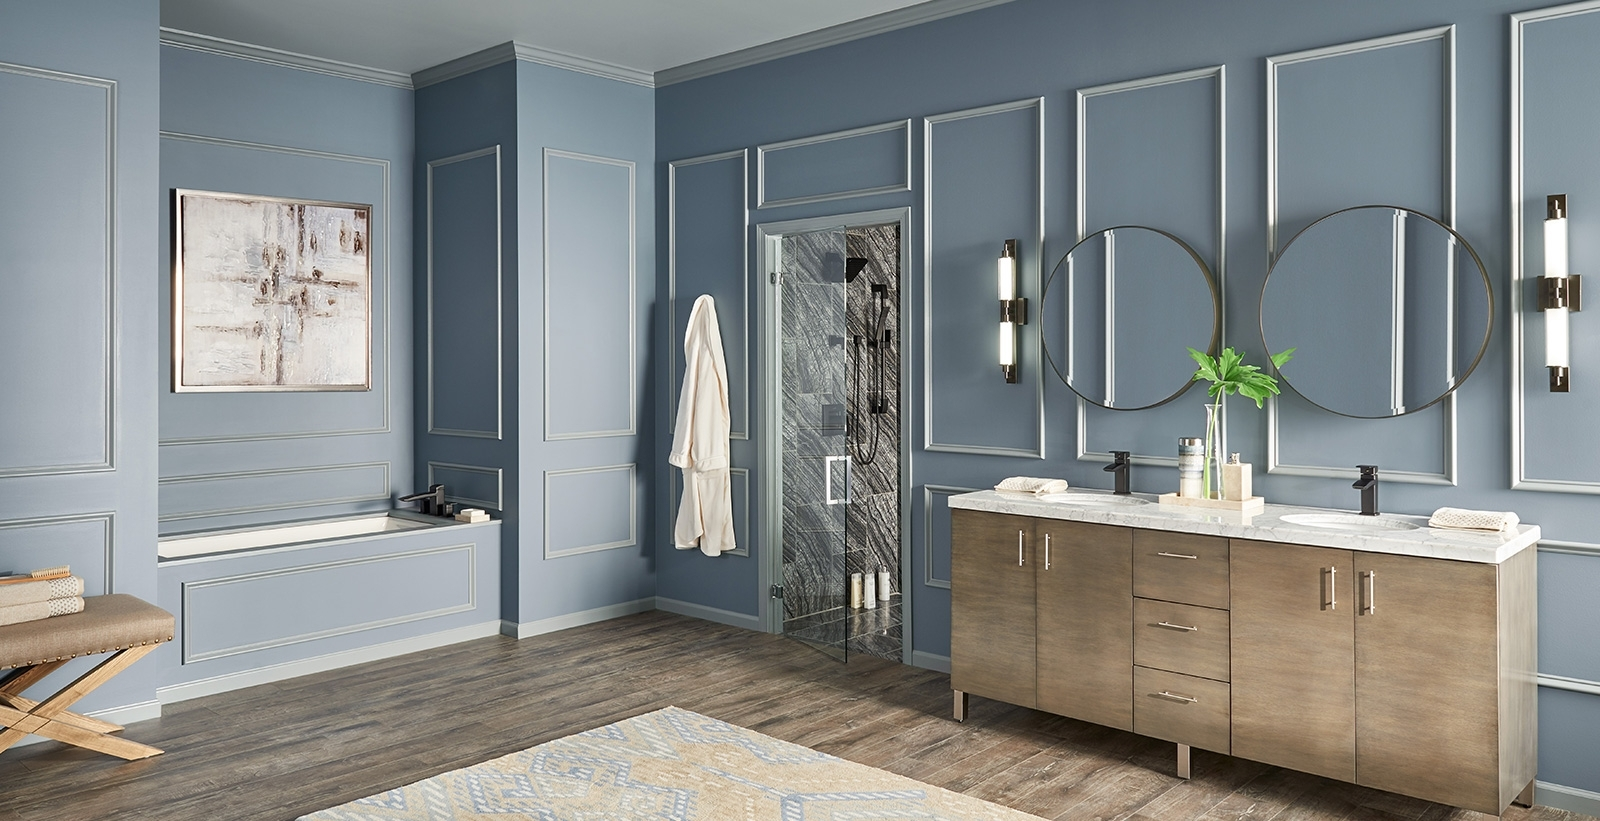 Blue Bathroom Ideas And Inspiration | Behr Bathroom Paint Color Behr